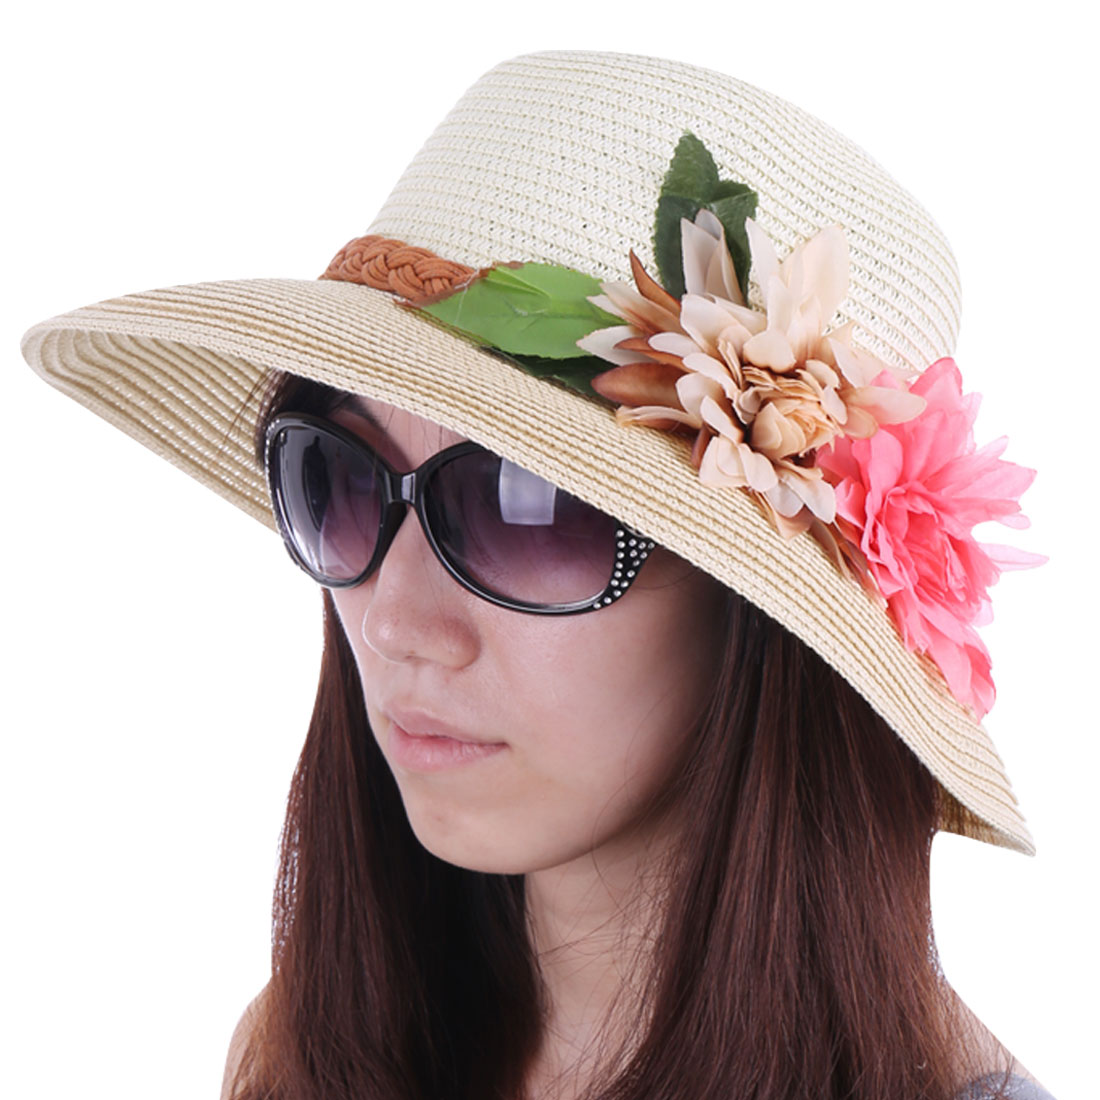 Women Rolled Up Brim Flower Decor Sun Hat Beige White